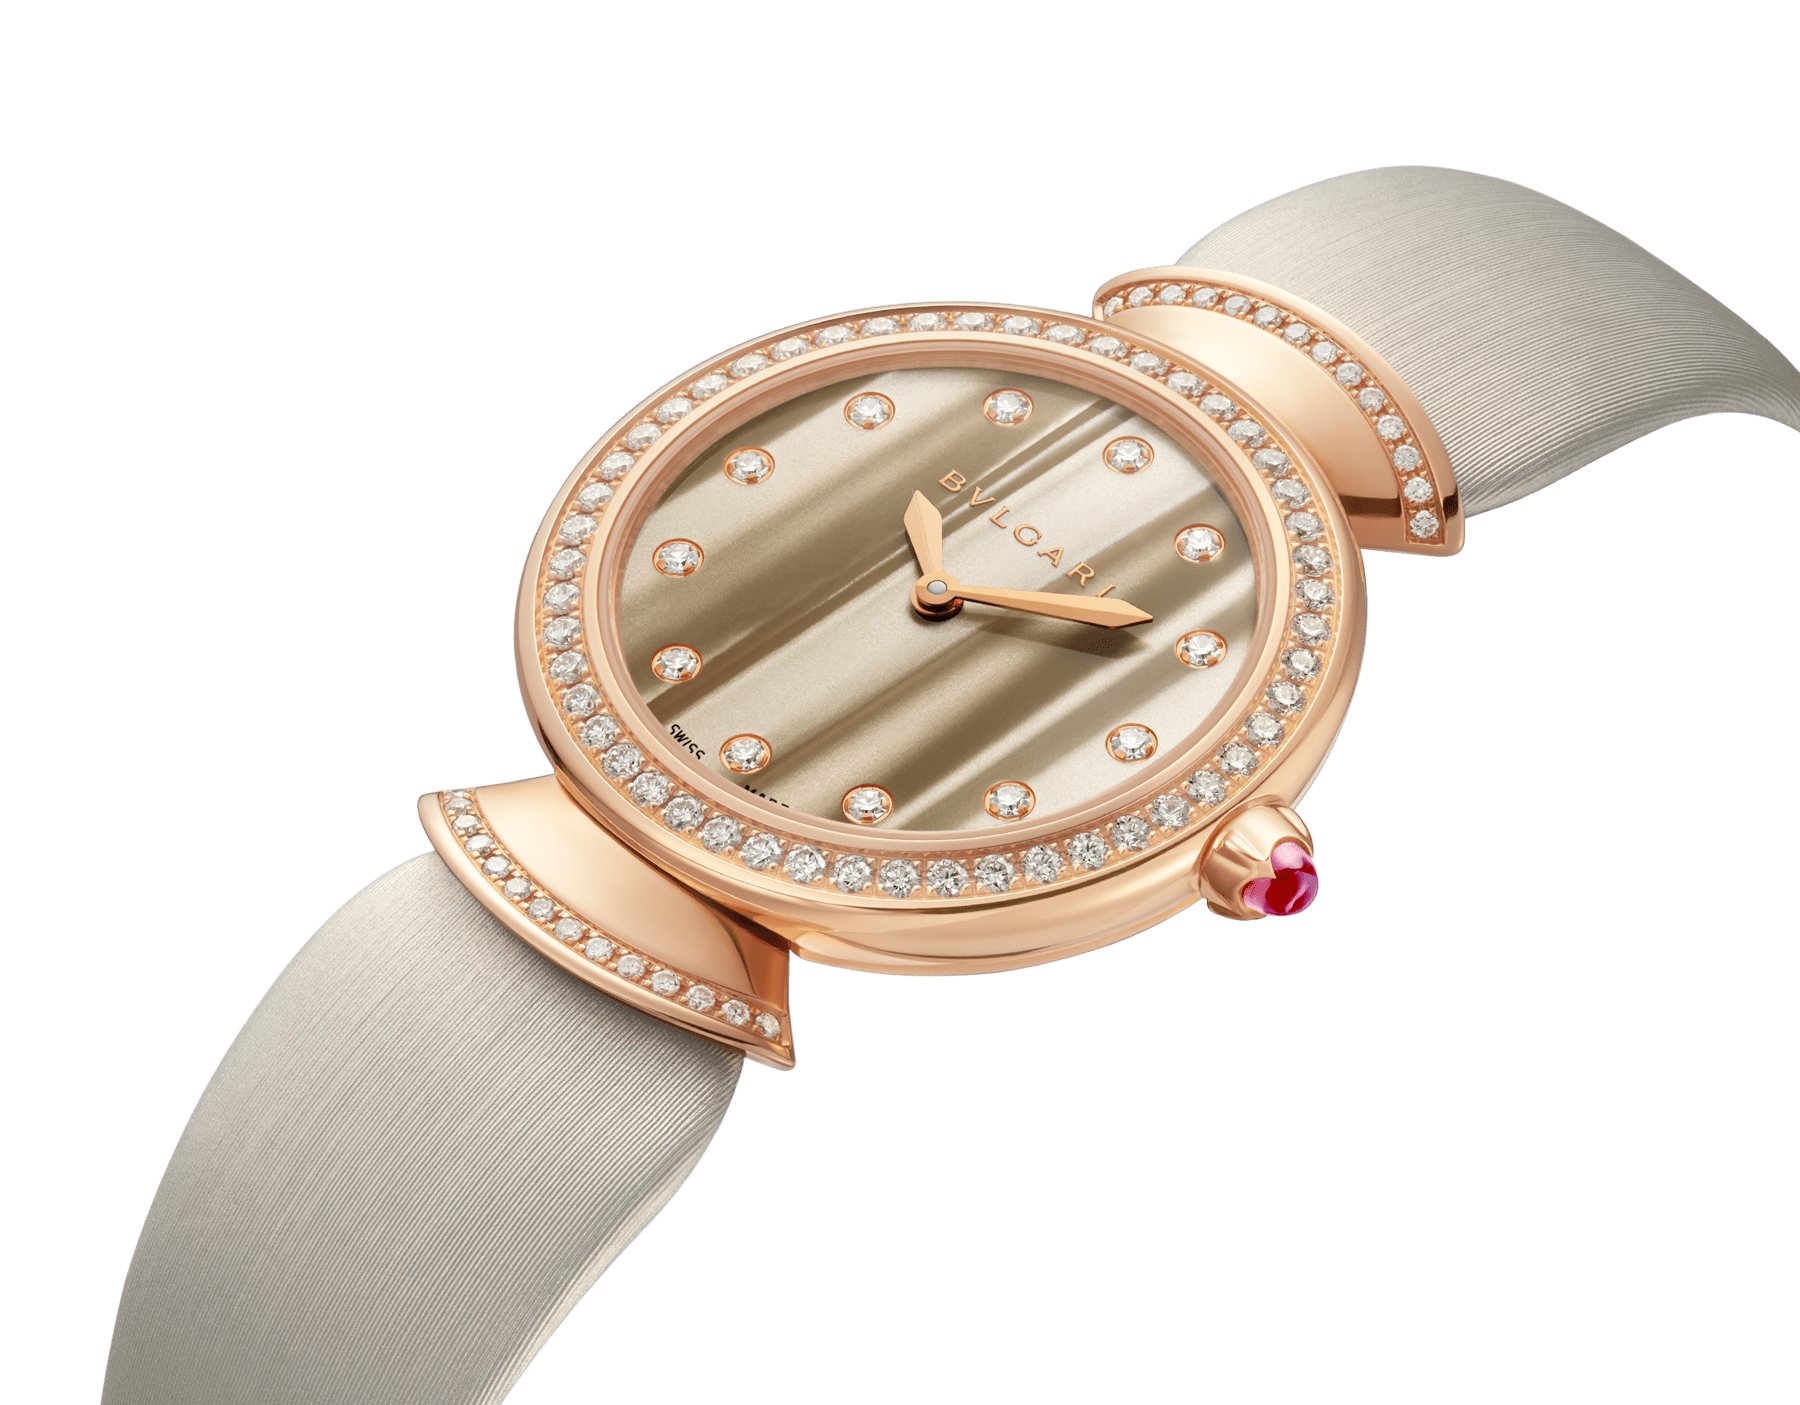 DIVAS' DREAM watch with 18 kt rose gold case set with brilliant-cut diamonds, natural acetate dial, diamond indexes and bronze satin bracelet 102435 image 2